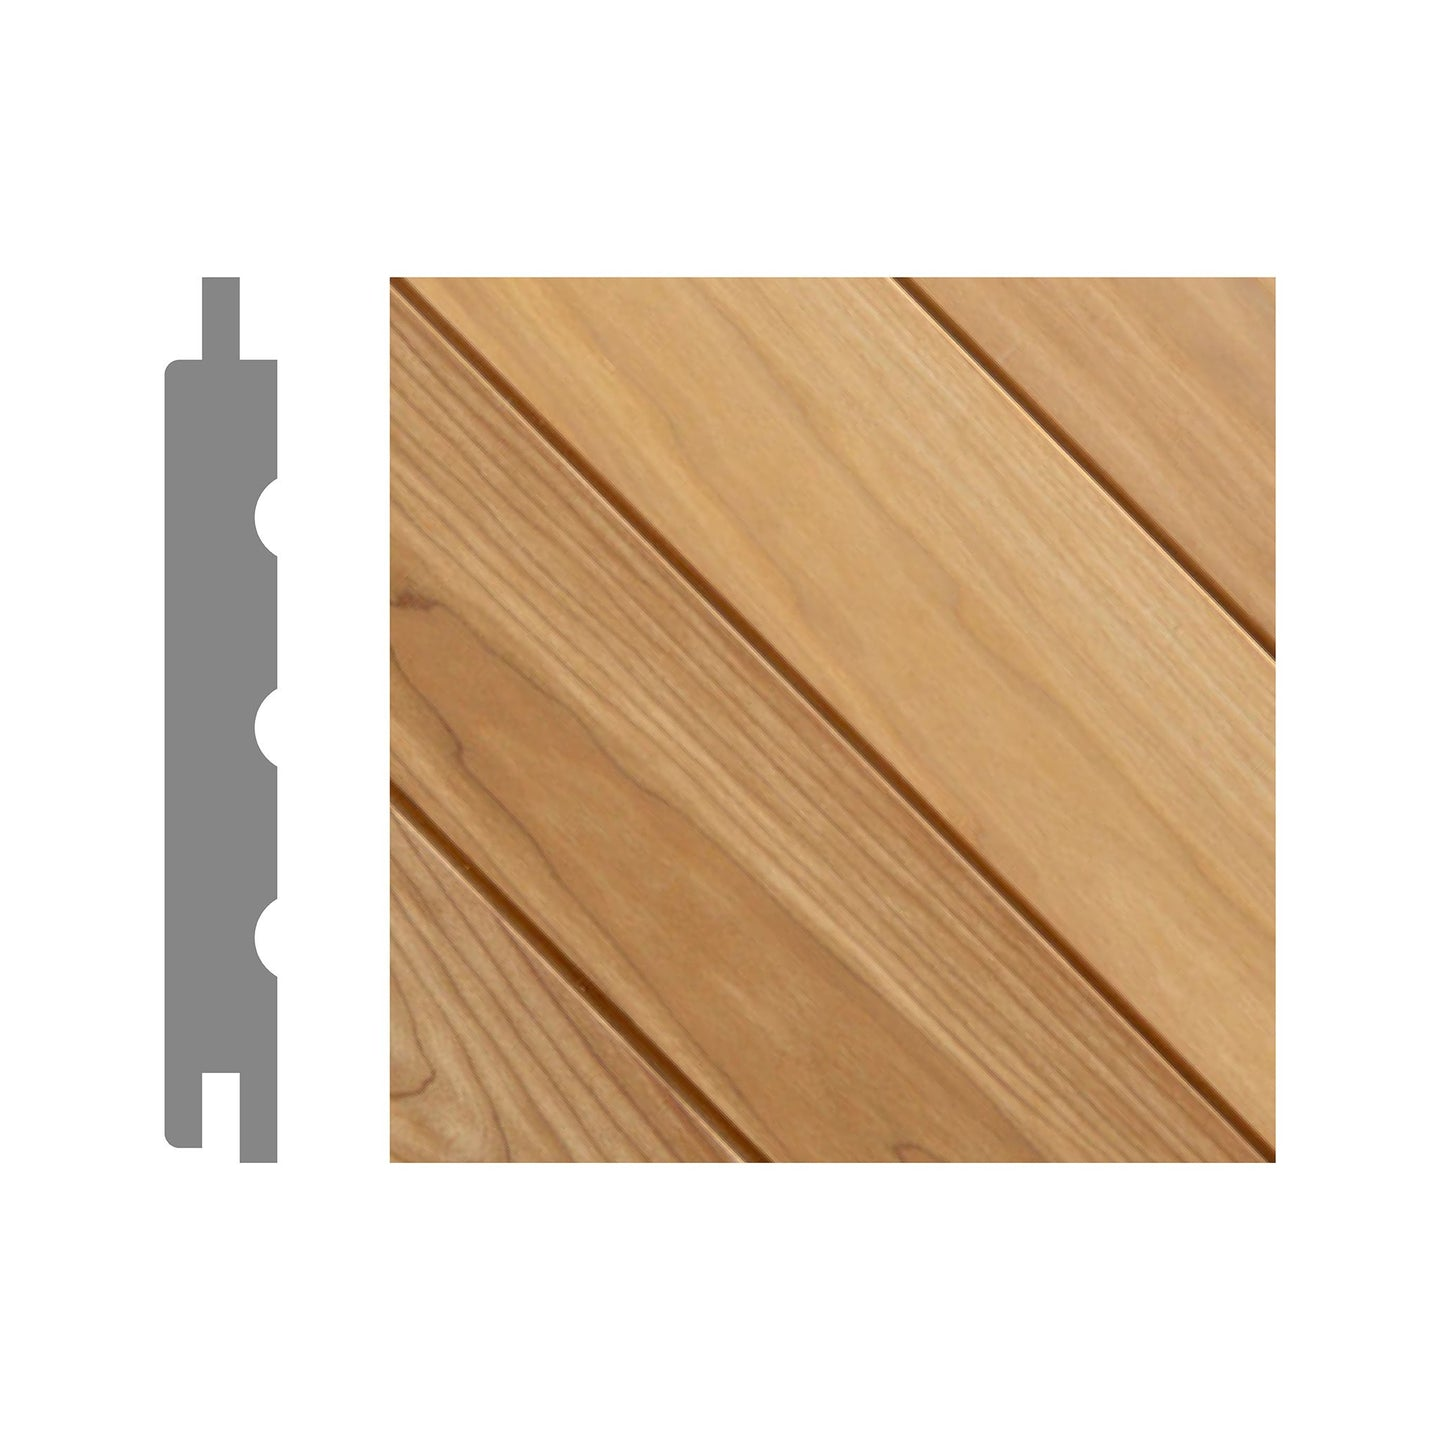 Thermo Aspen Sauna Panel Cladding Kallio Profile (6 Pack) 2.1m / 120mm 2.4m / 120mm Sauna Timber Finnmark Sauna